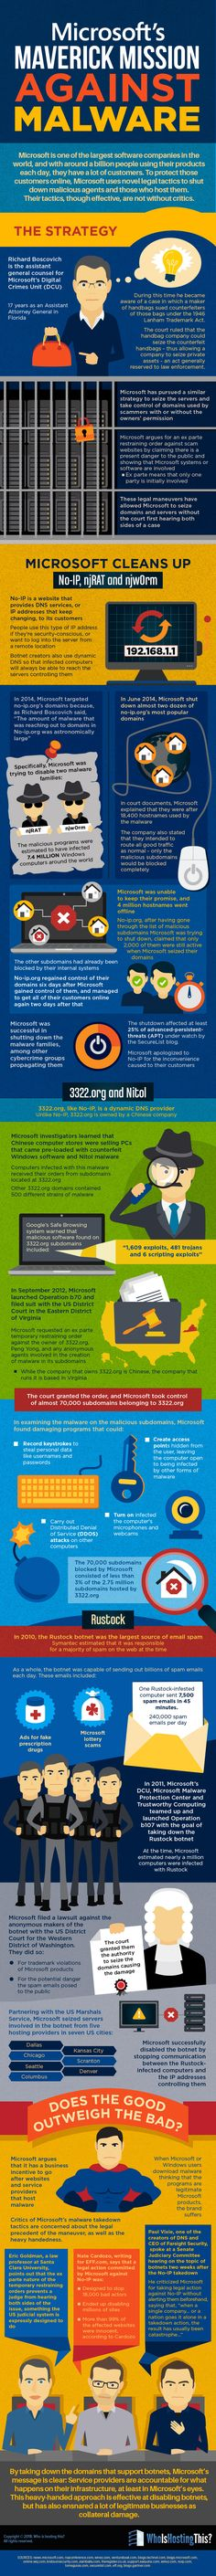 Microsoft's Maverick Mission Against Malware #infographic #Microsoft #Internet #Technology #Malware